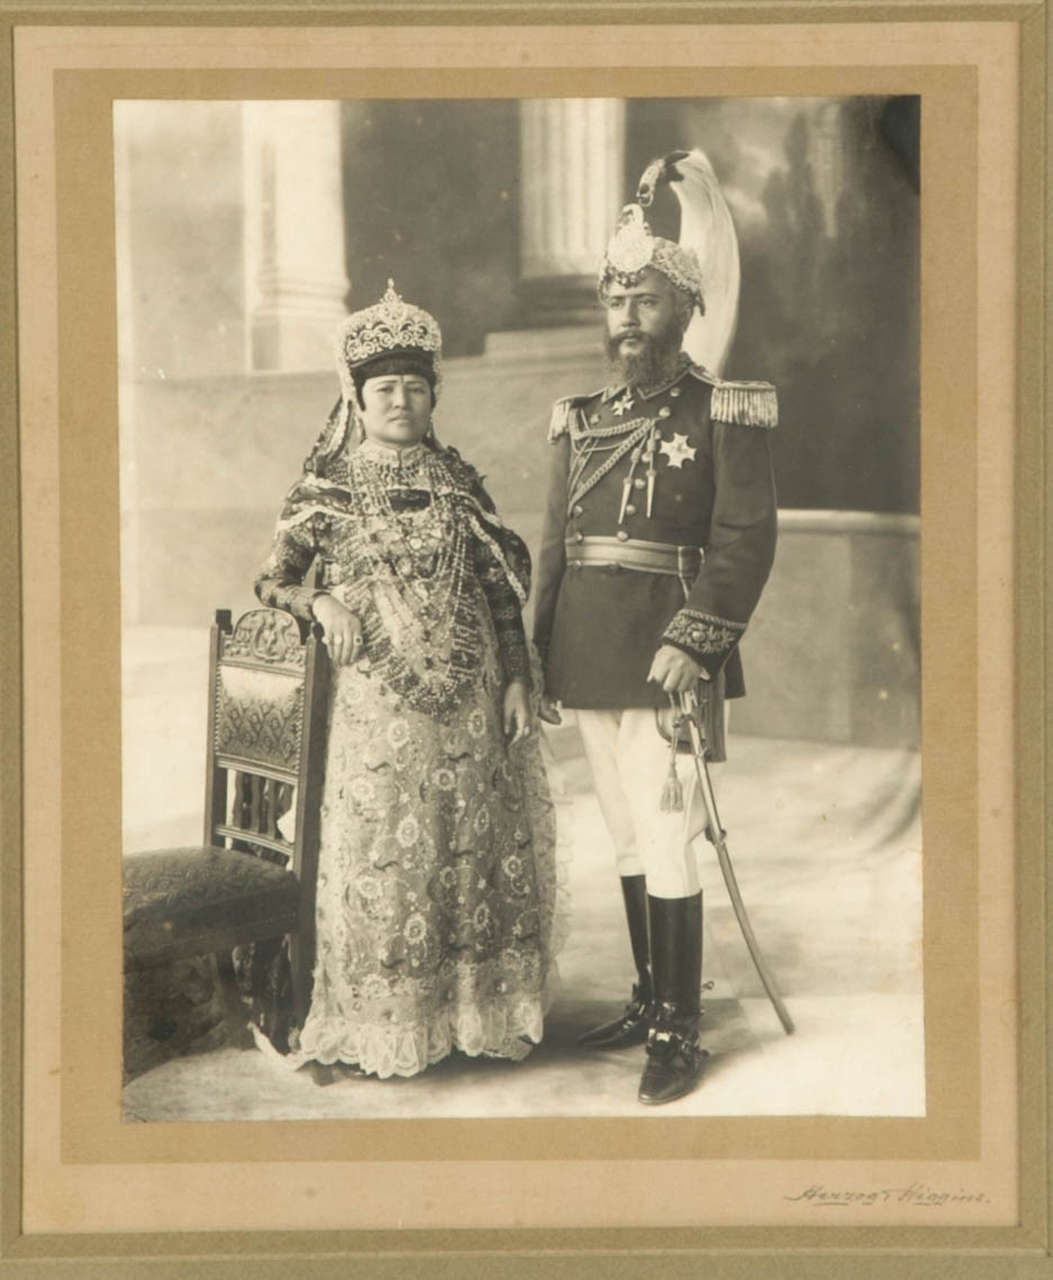 Early 20th Century Vintage Photography of a Maharaja by Herzog et Higgins circa 1910-1920